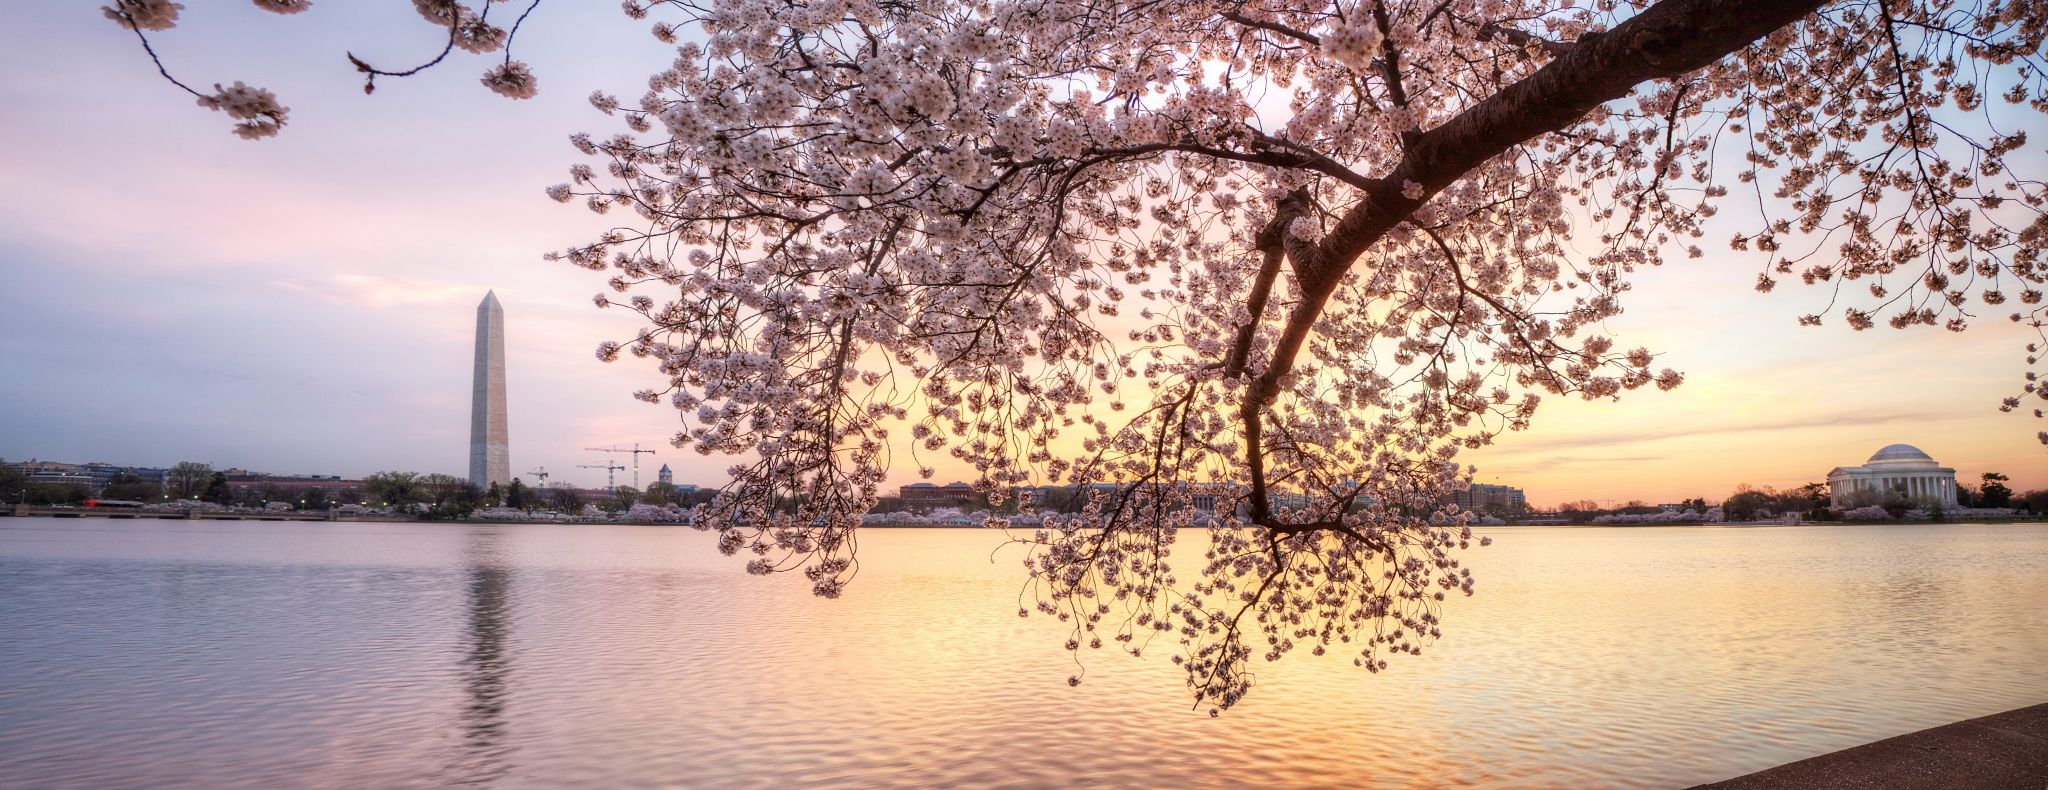 2048x790 cherry blossom free computer wallpaper